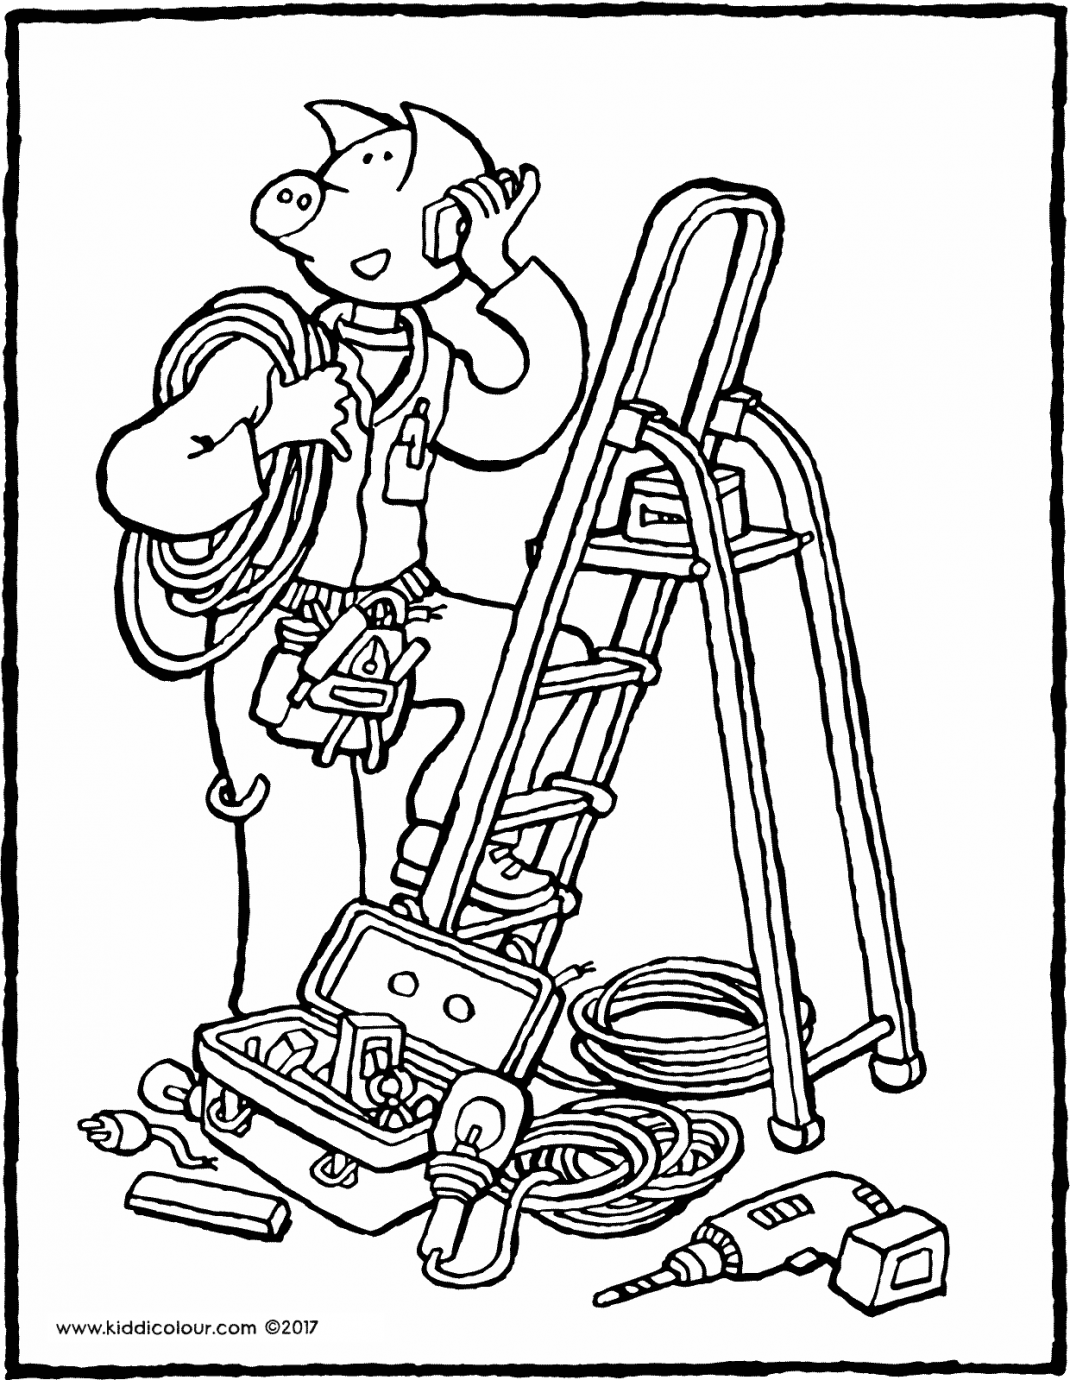 electrician colouring page drawing picture 01V